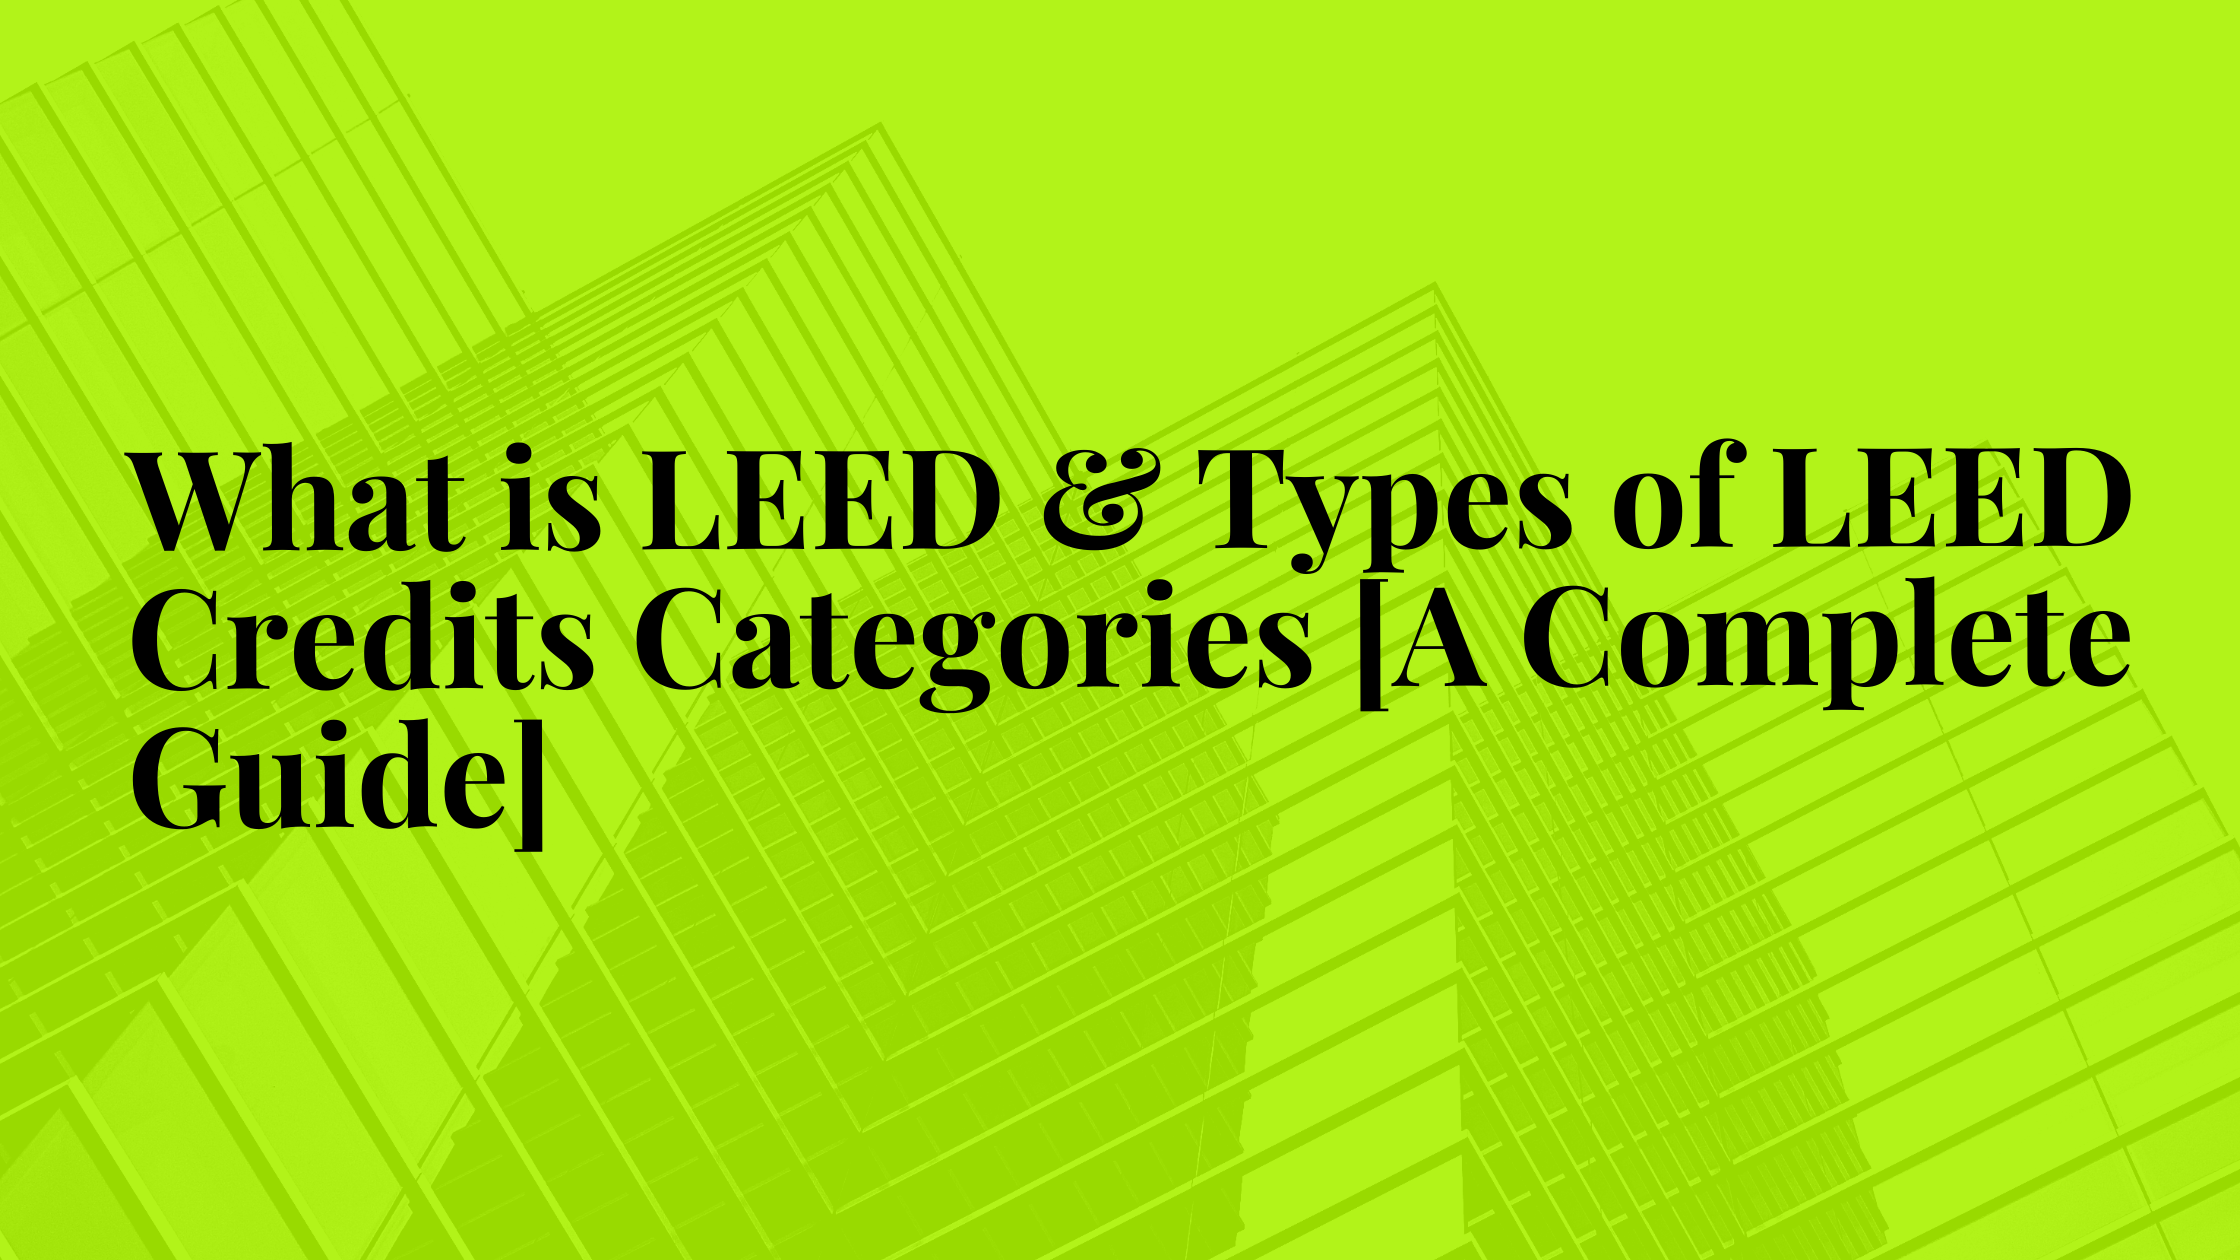 What is LEED & Types of LEED Credits Categories [A Complete Guide]|LEED Accreditation||What is LEED?||LEED Certification|